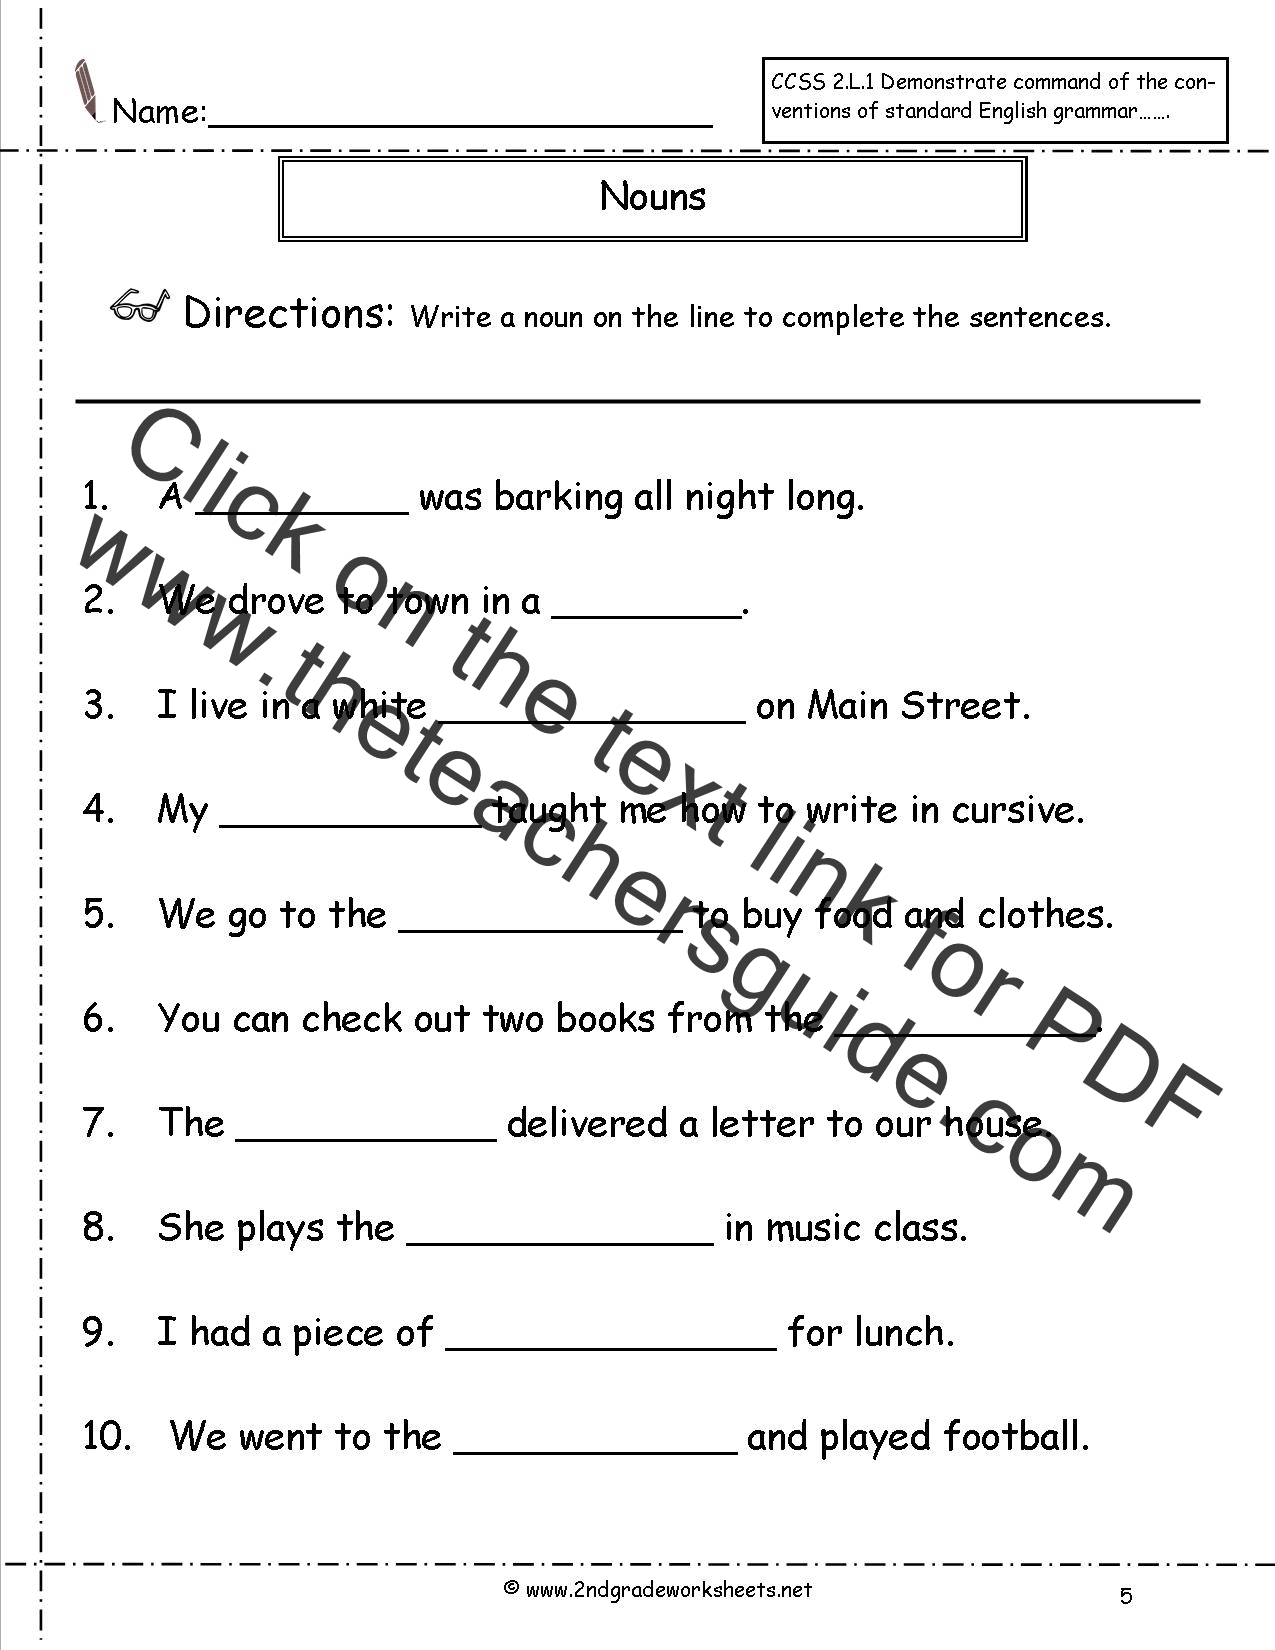 Worksheets Noun Worksheets 2nd Grade nouns worksheets and printouts worksheet